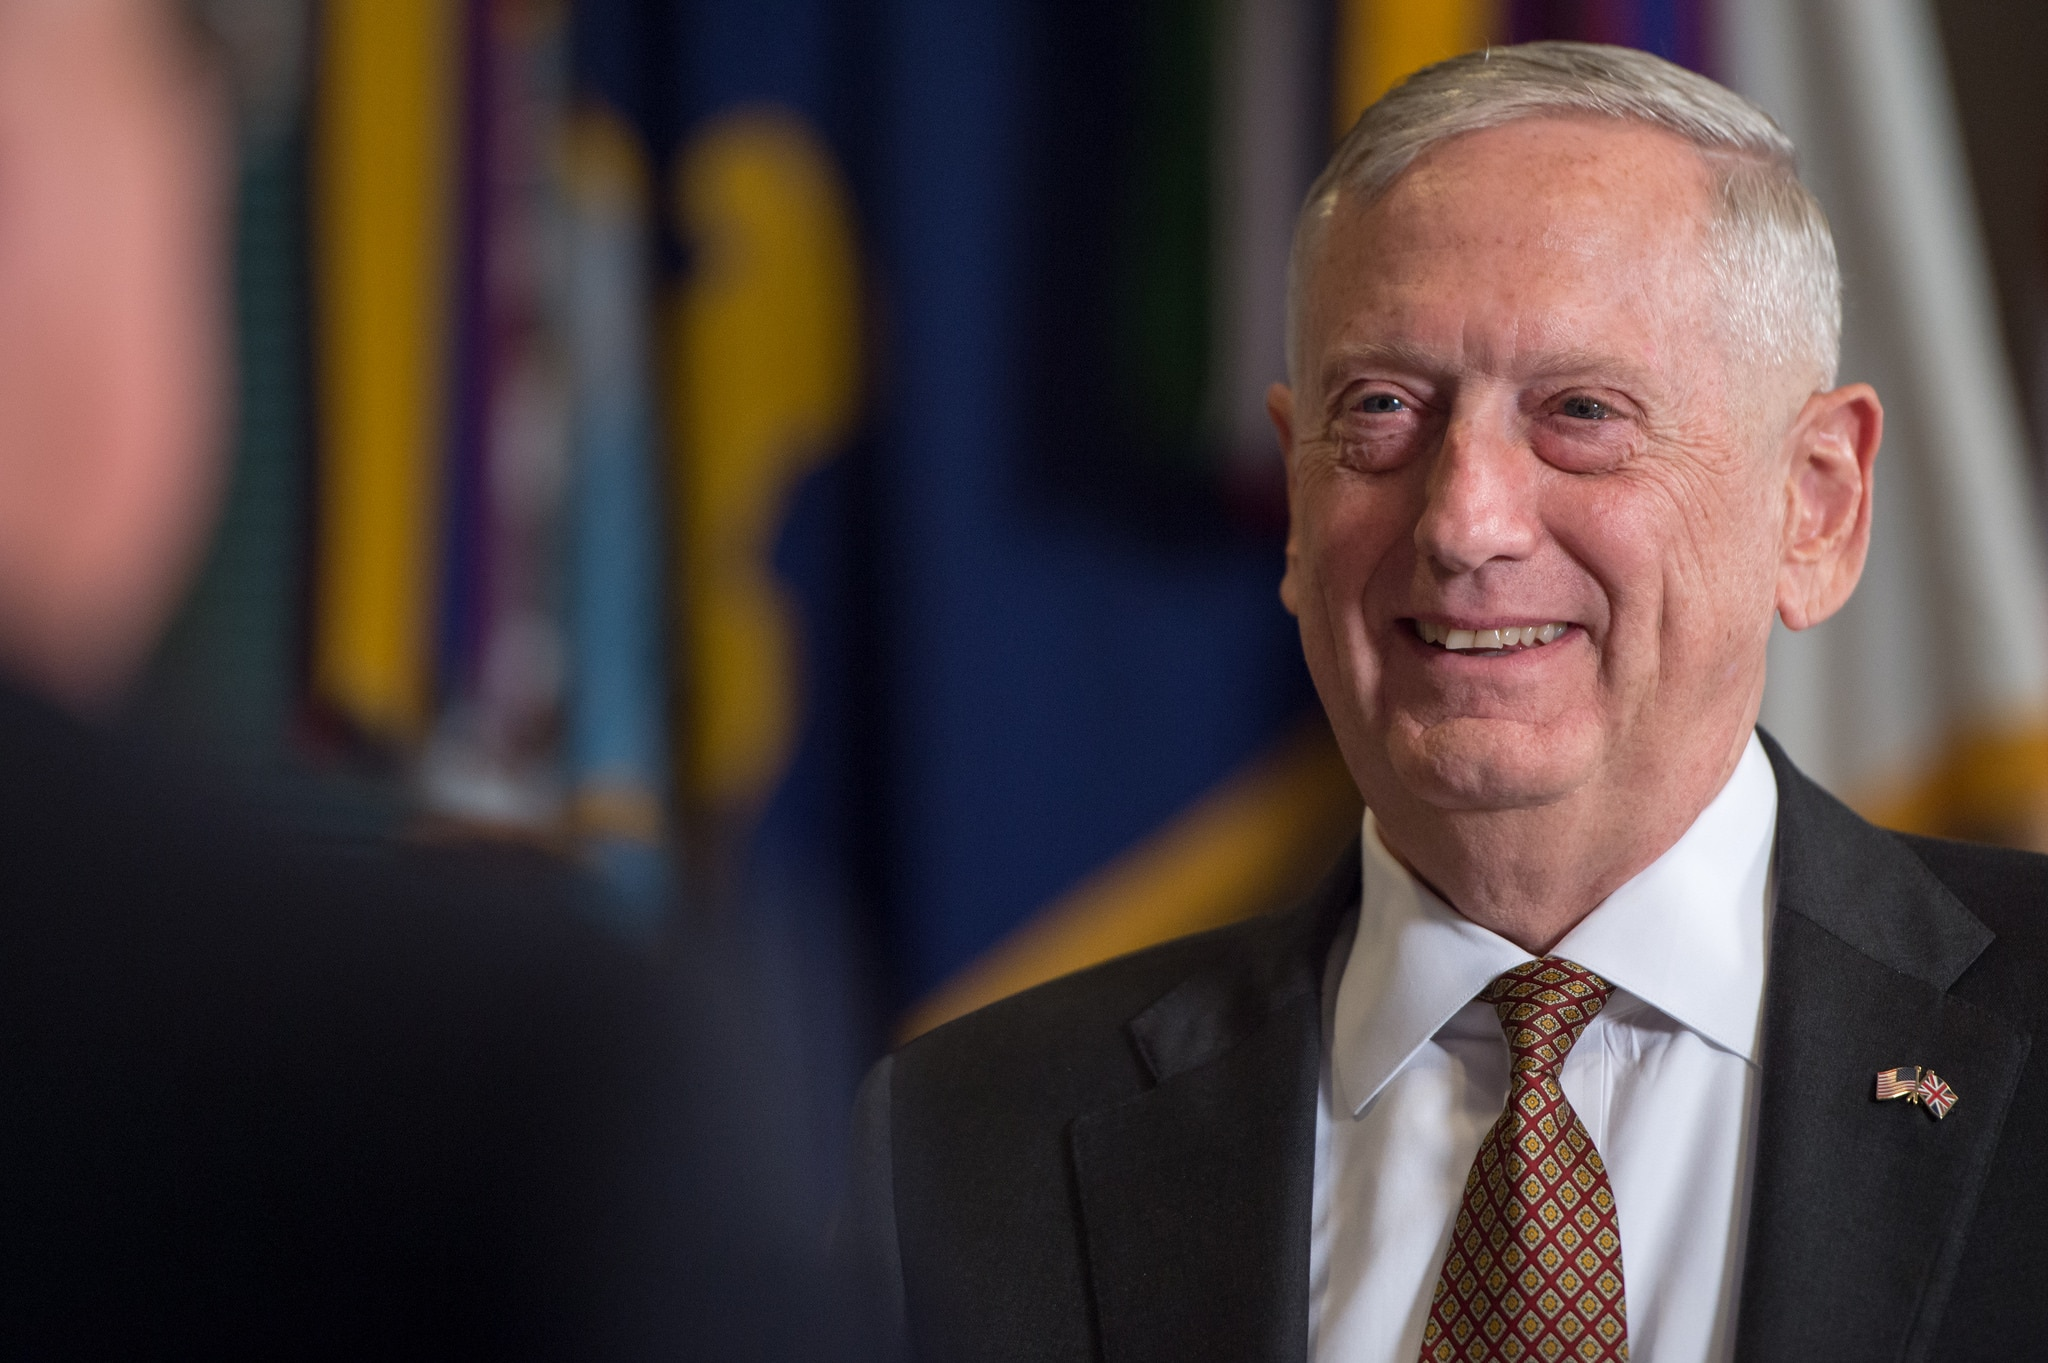 High school journalist calls Mattis, Chaos Actual calls back